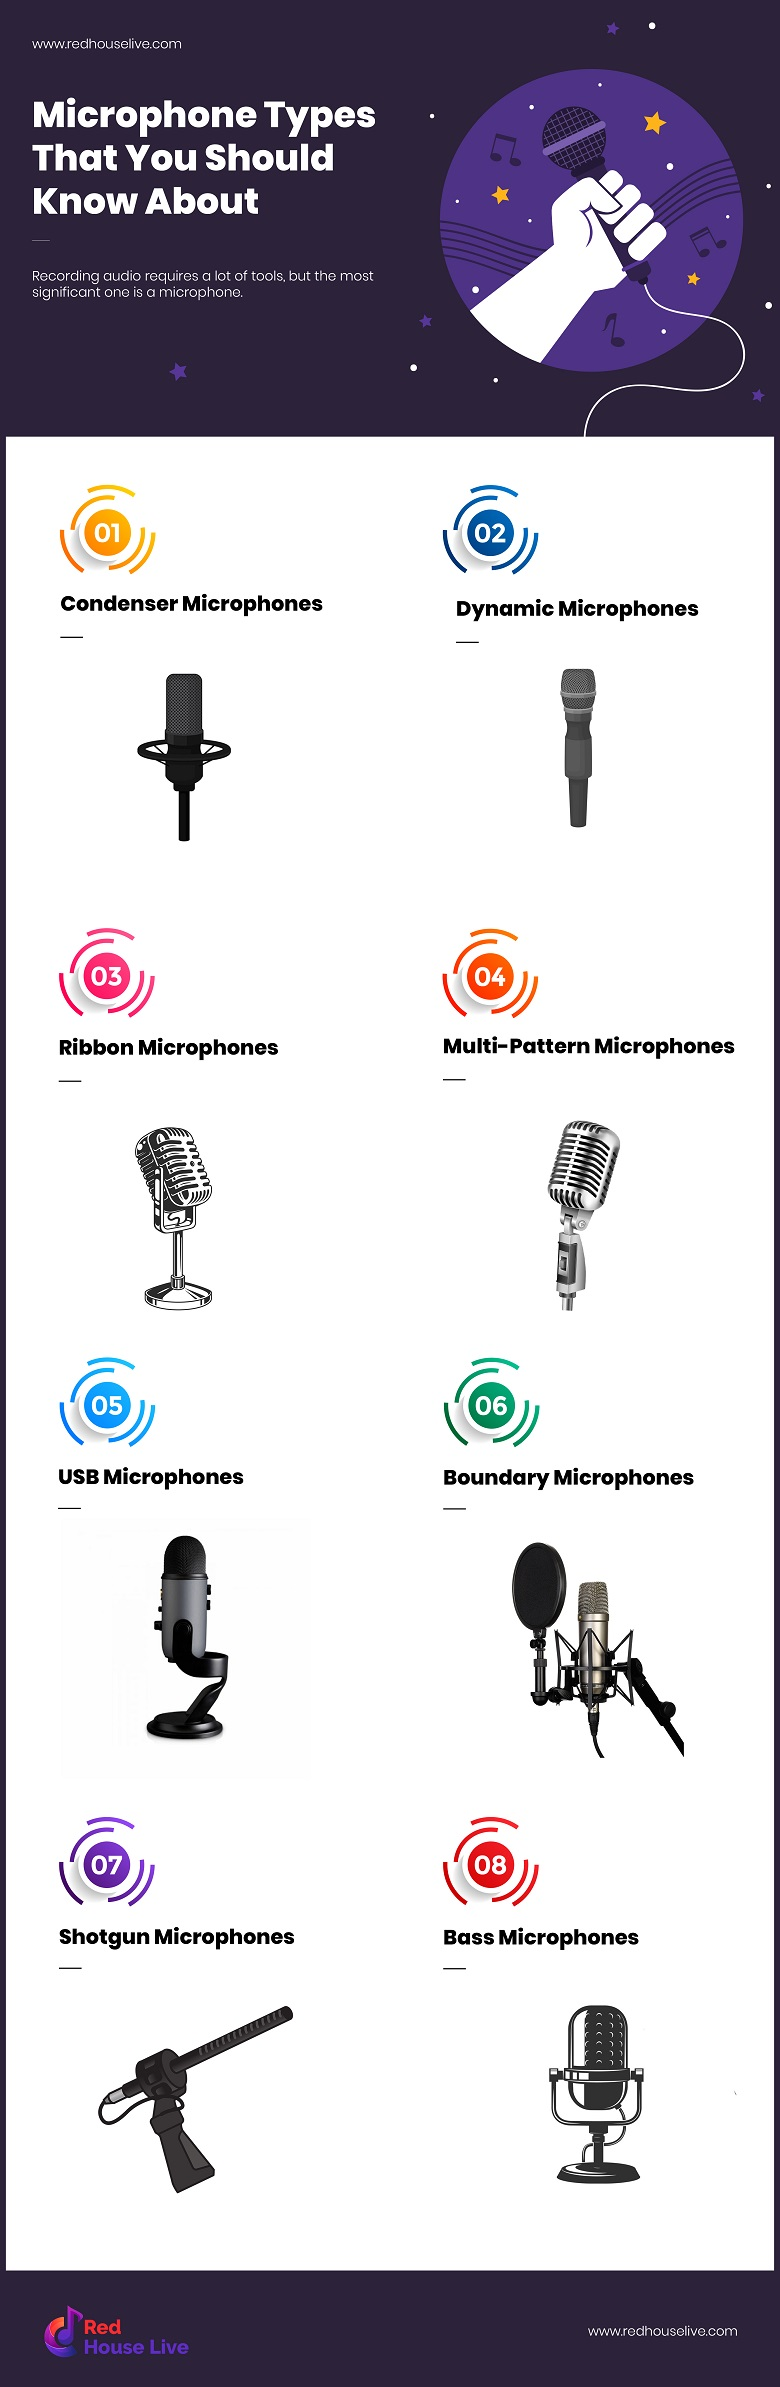 Microphone Types